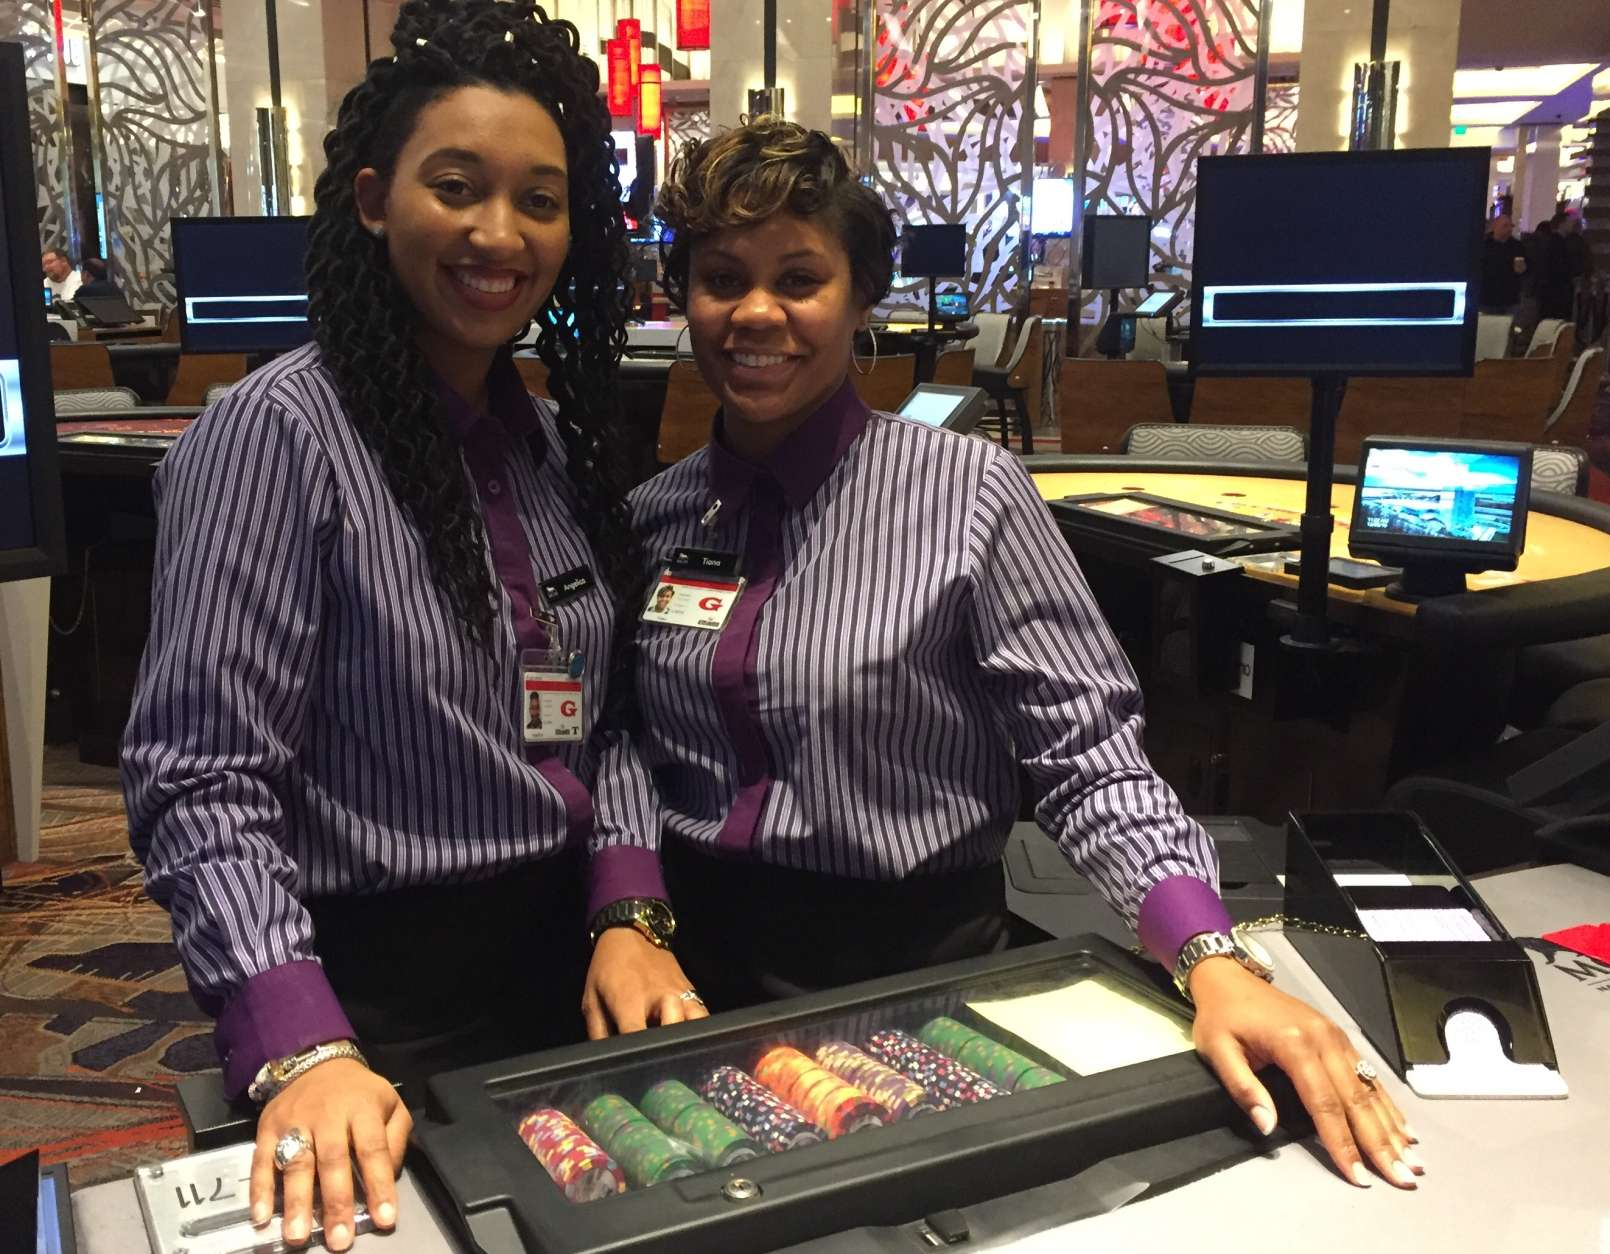 Angelica Allen, right, stands with Tiana Johnson, left, inside the MGM National Harbor casino. (WTOP/Michelle Murillo)